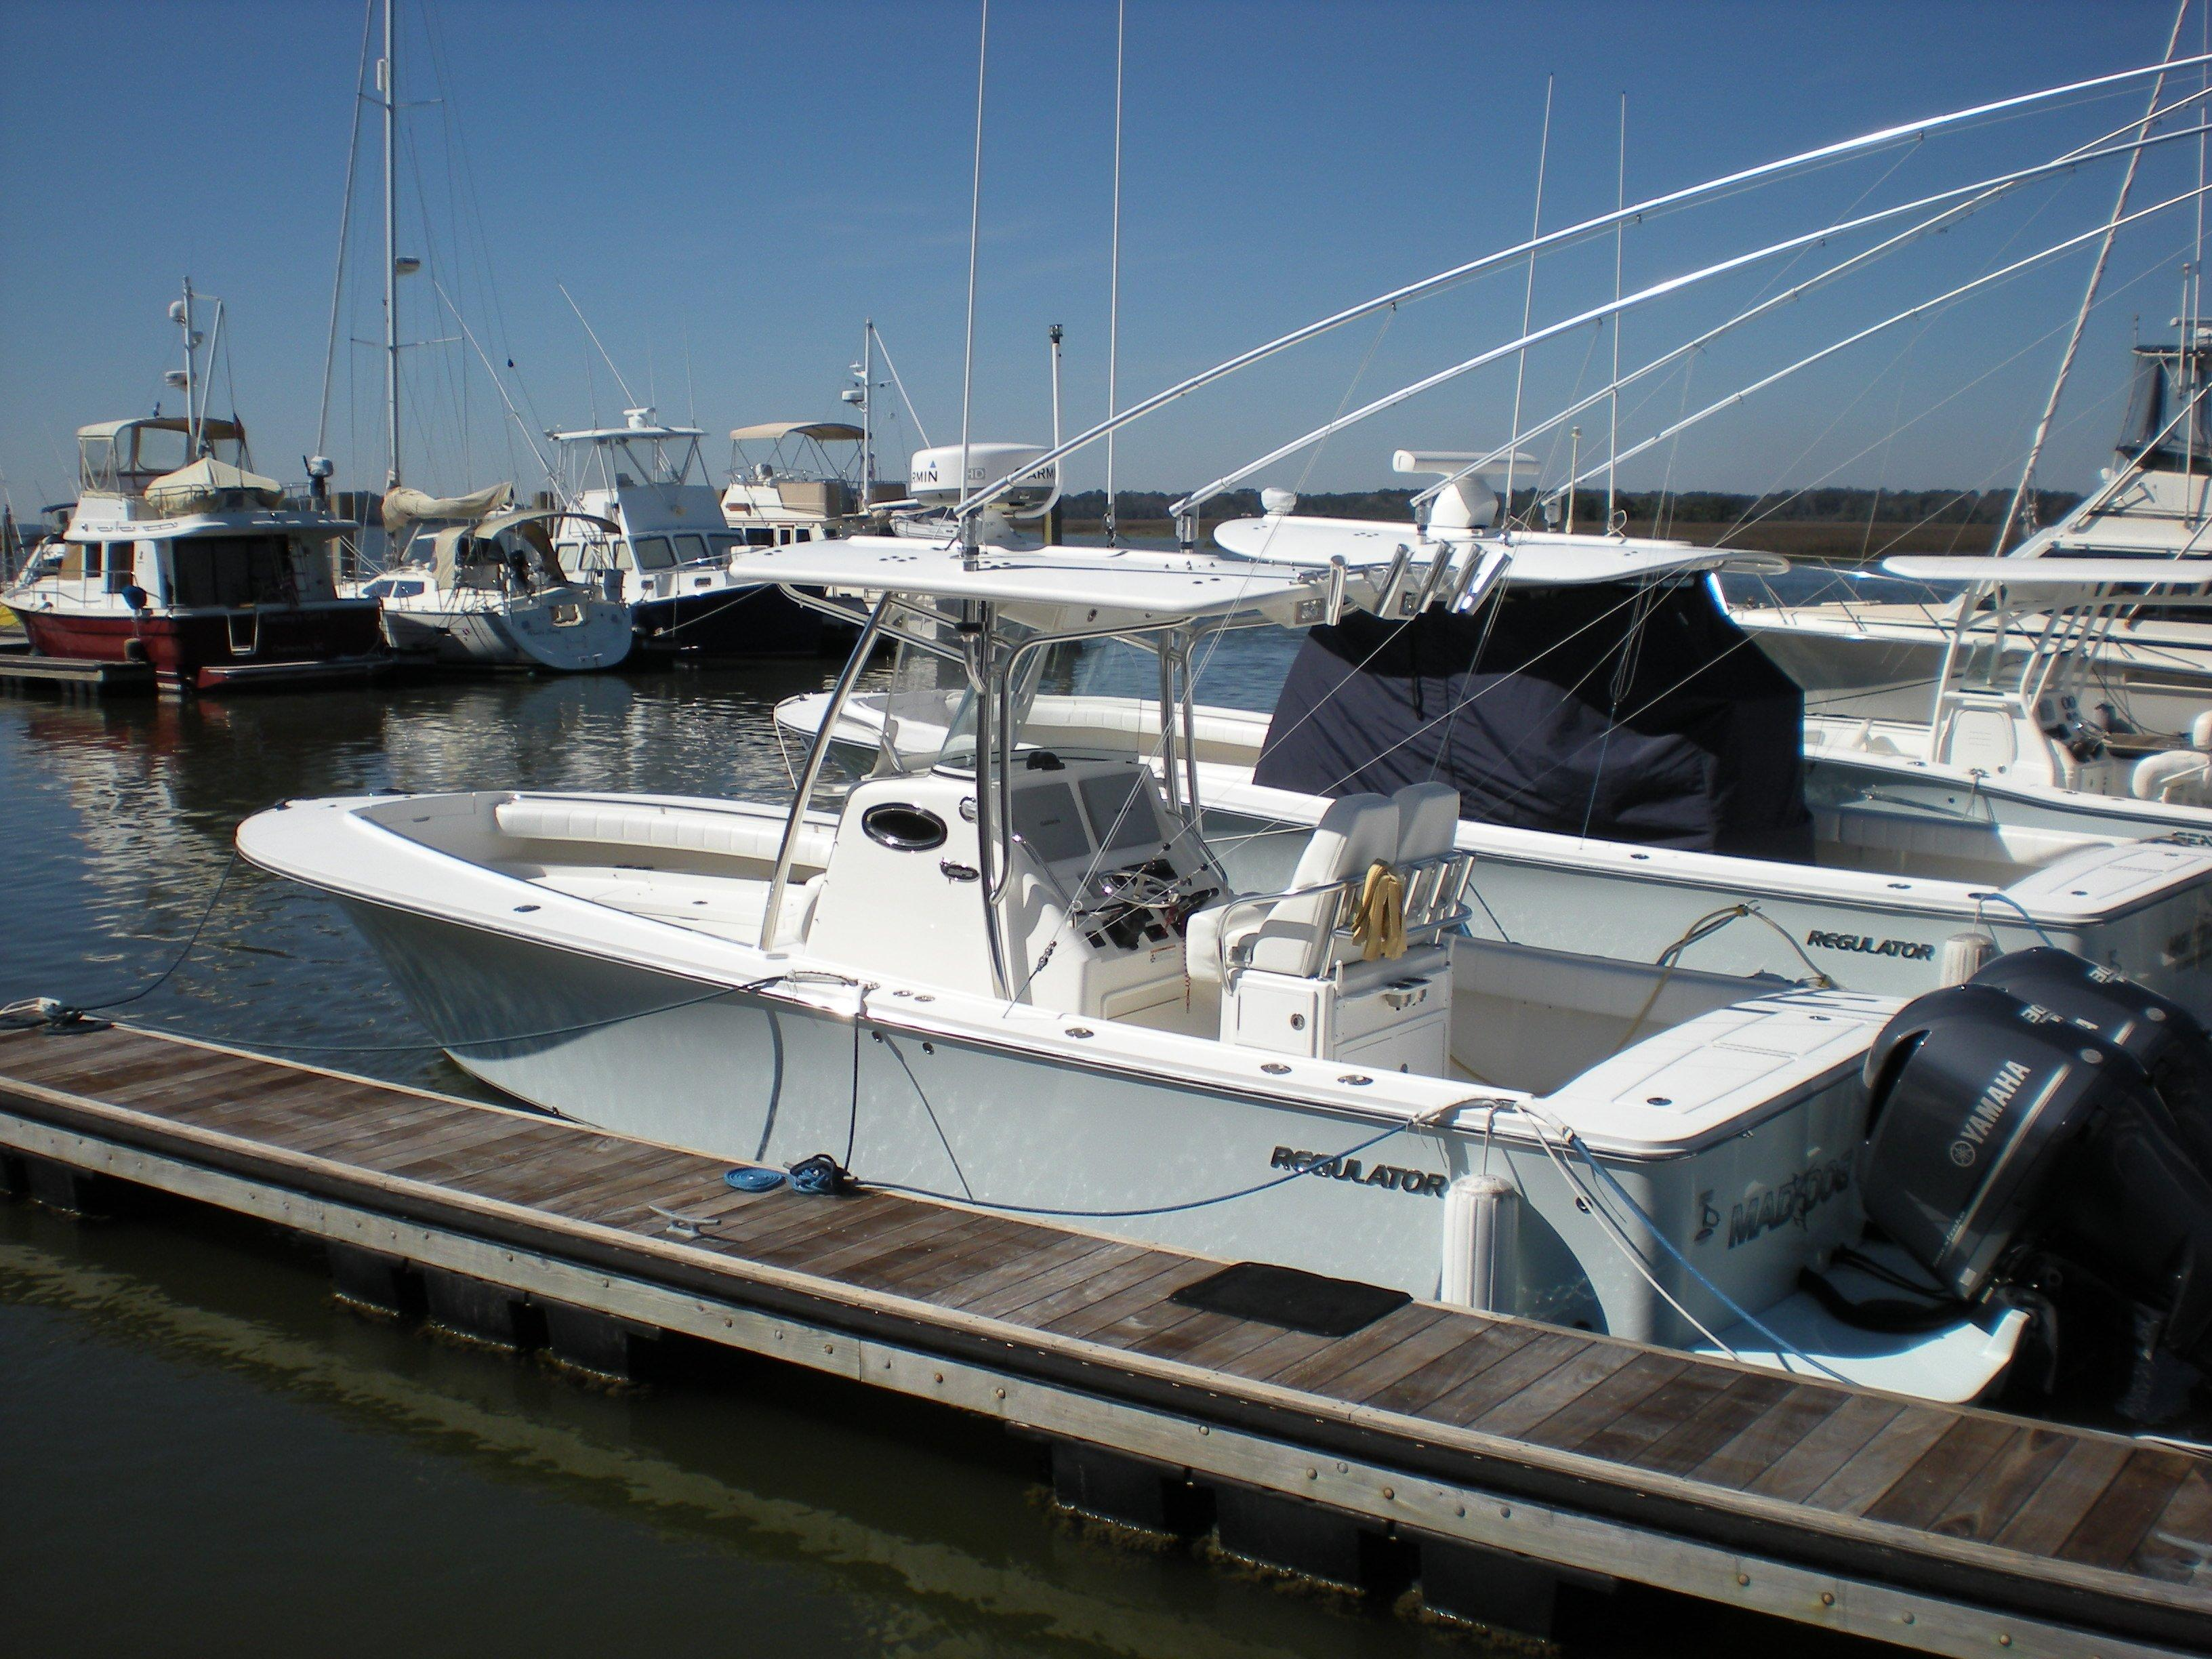 Fishing boats for sale in charleston sc used boats on for Fishing boats for sale by owner